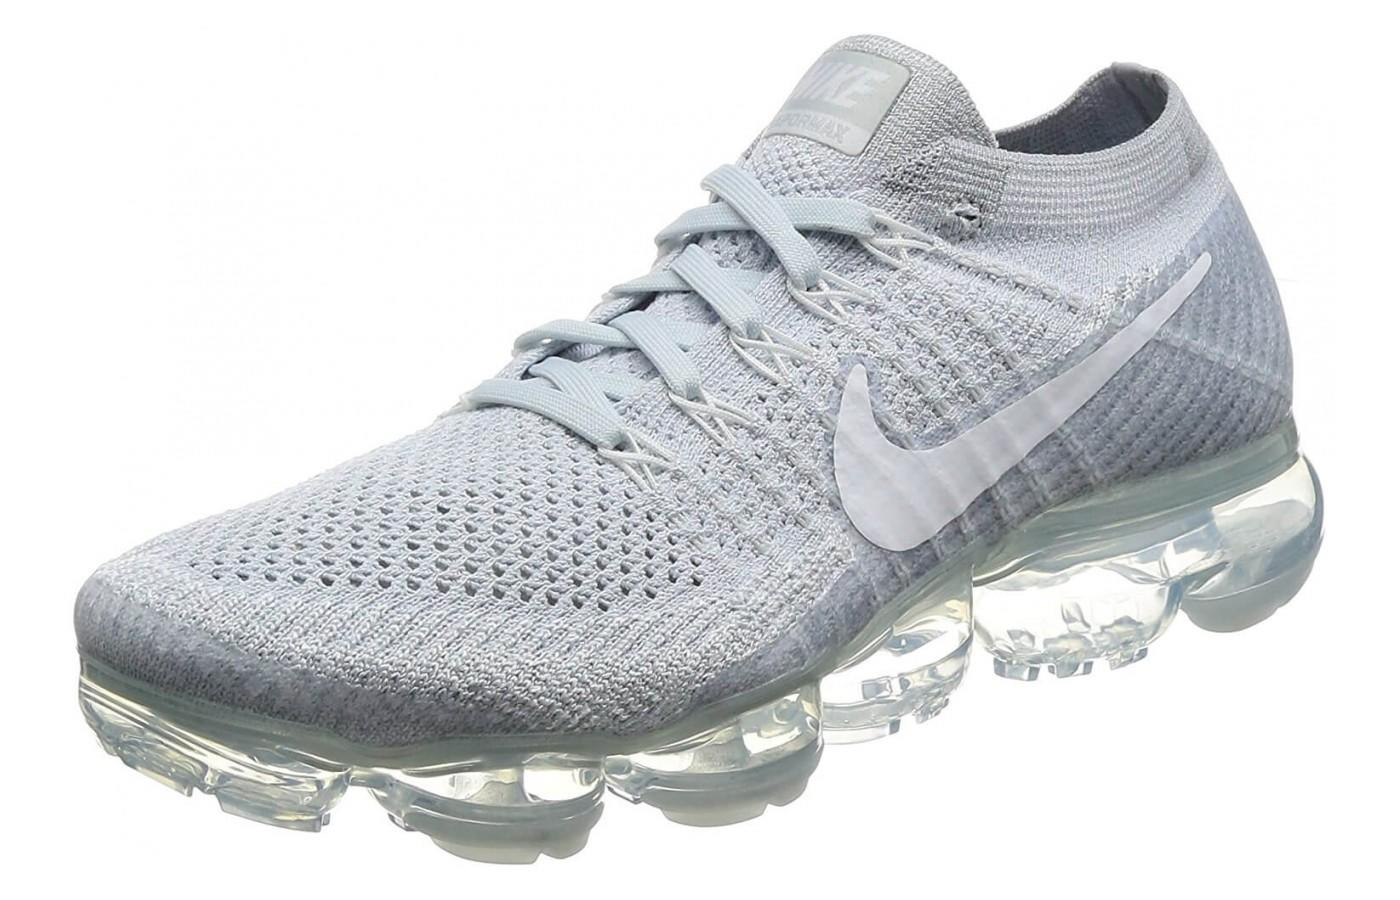 Nike Air Vapormax Flyknit To Buy Or Not In June 2018